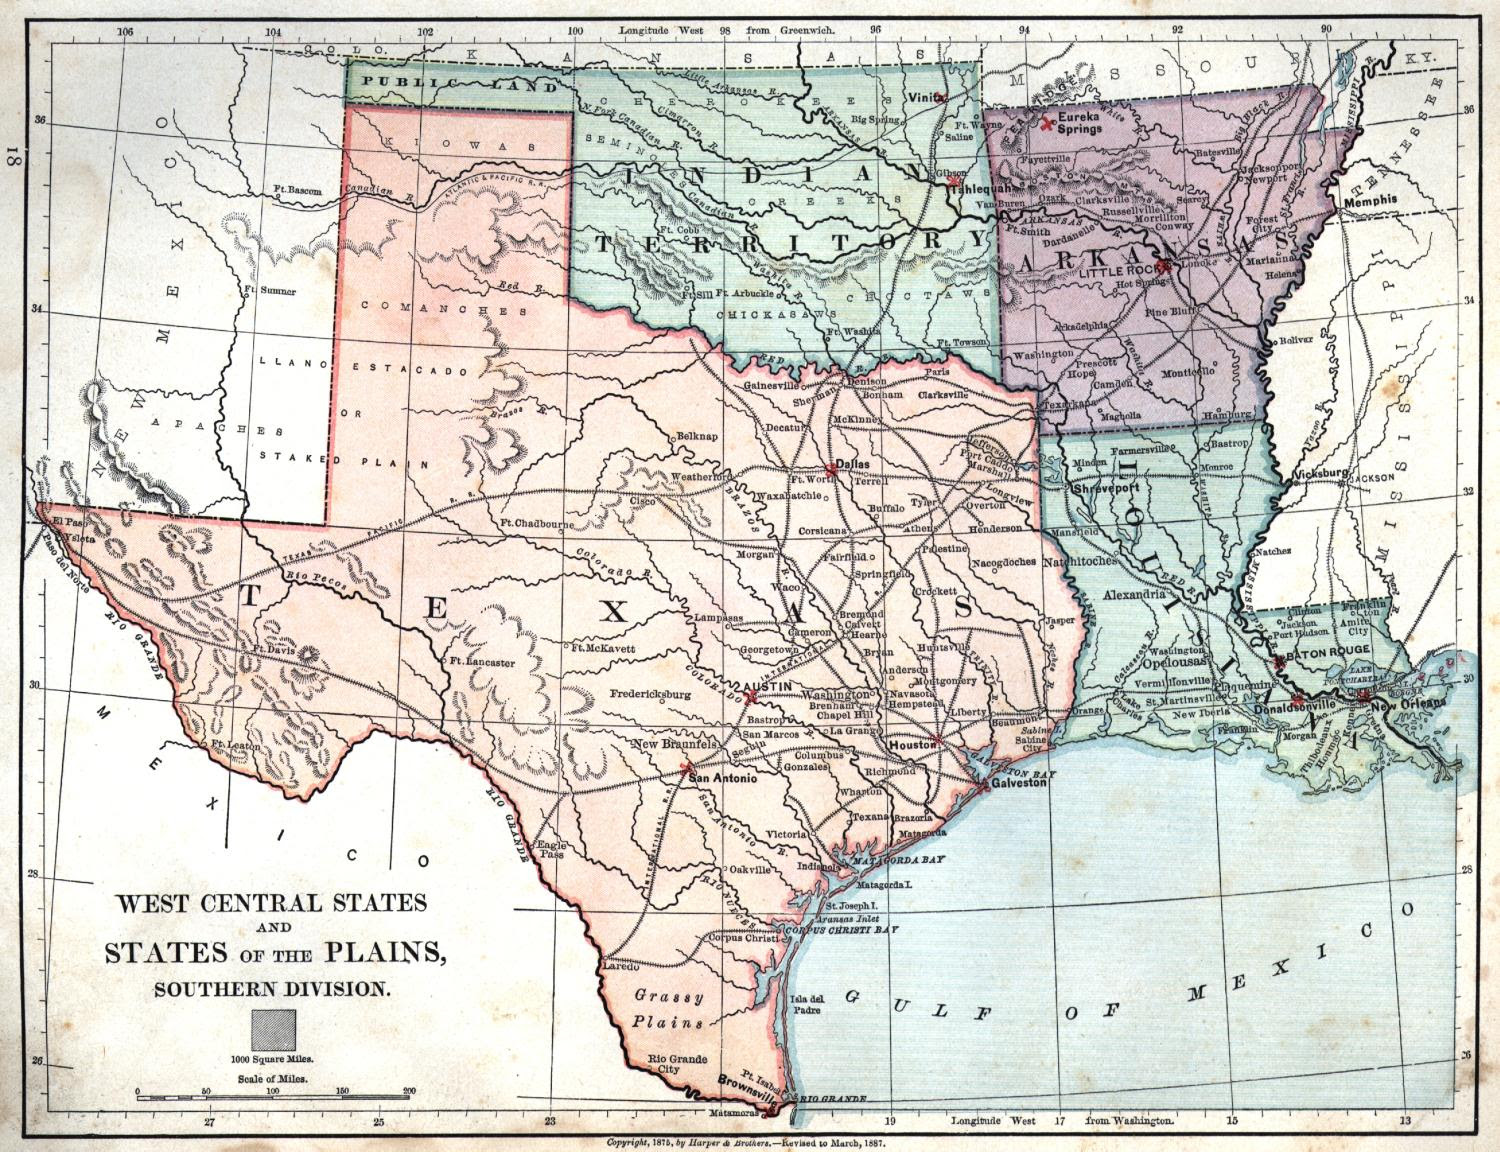 Map Of Texas And Louisiana Border With Cities.Map Of Texas And Louisiana Together Map Of Us Western States